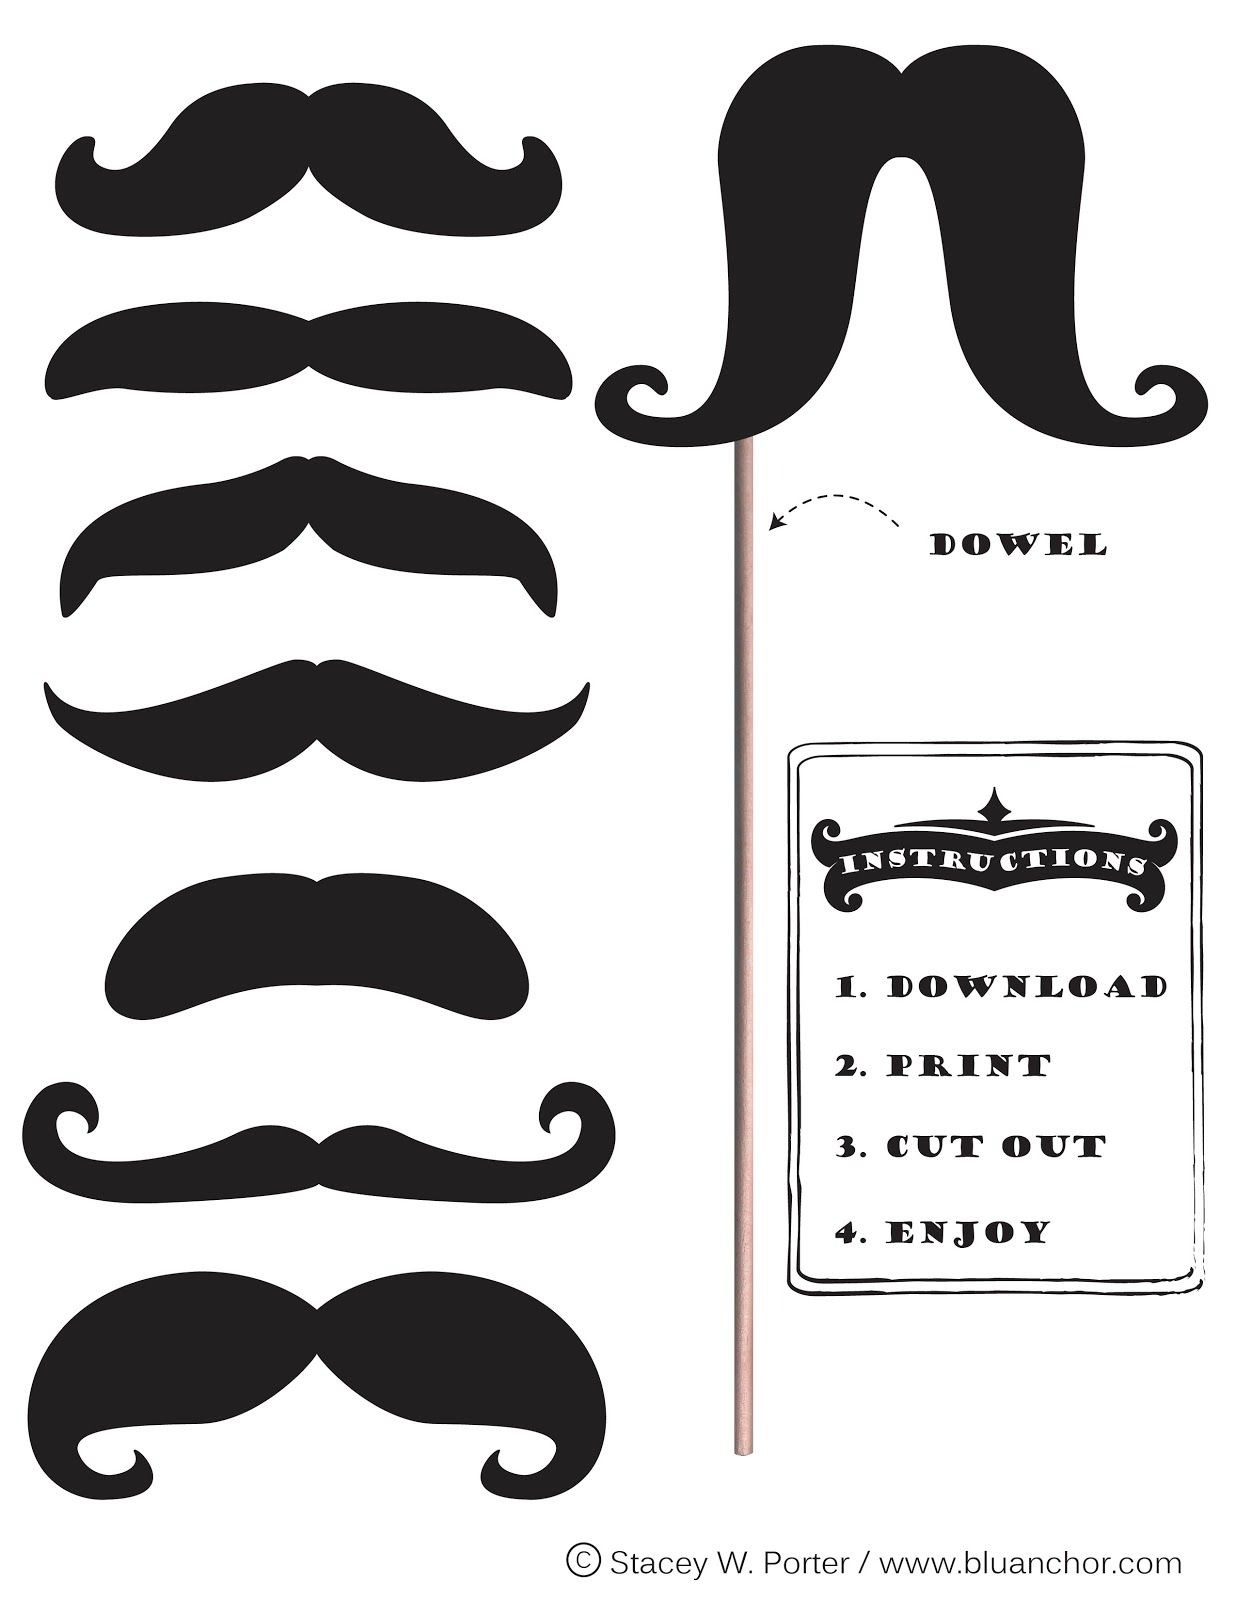 The Art of Stacey W. Porter: Free Printable Moustache Brigade in ...